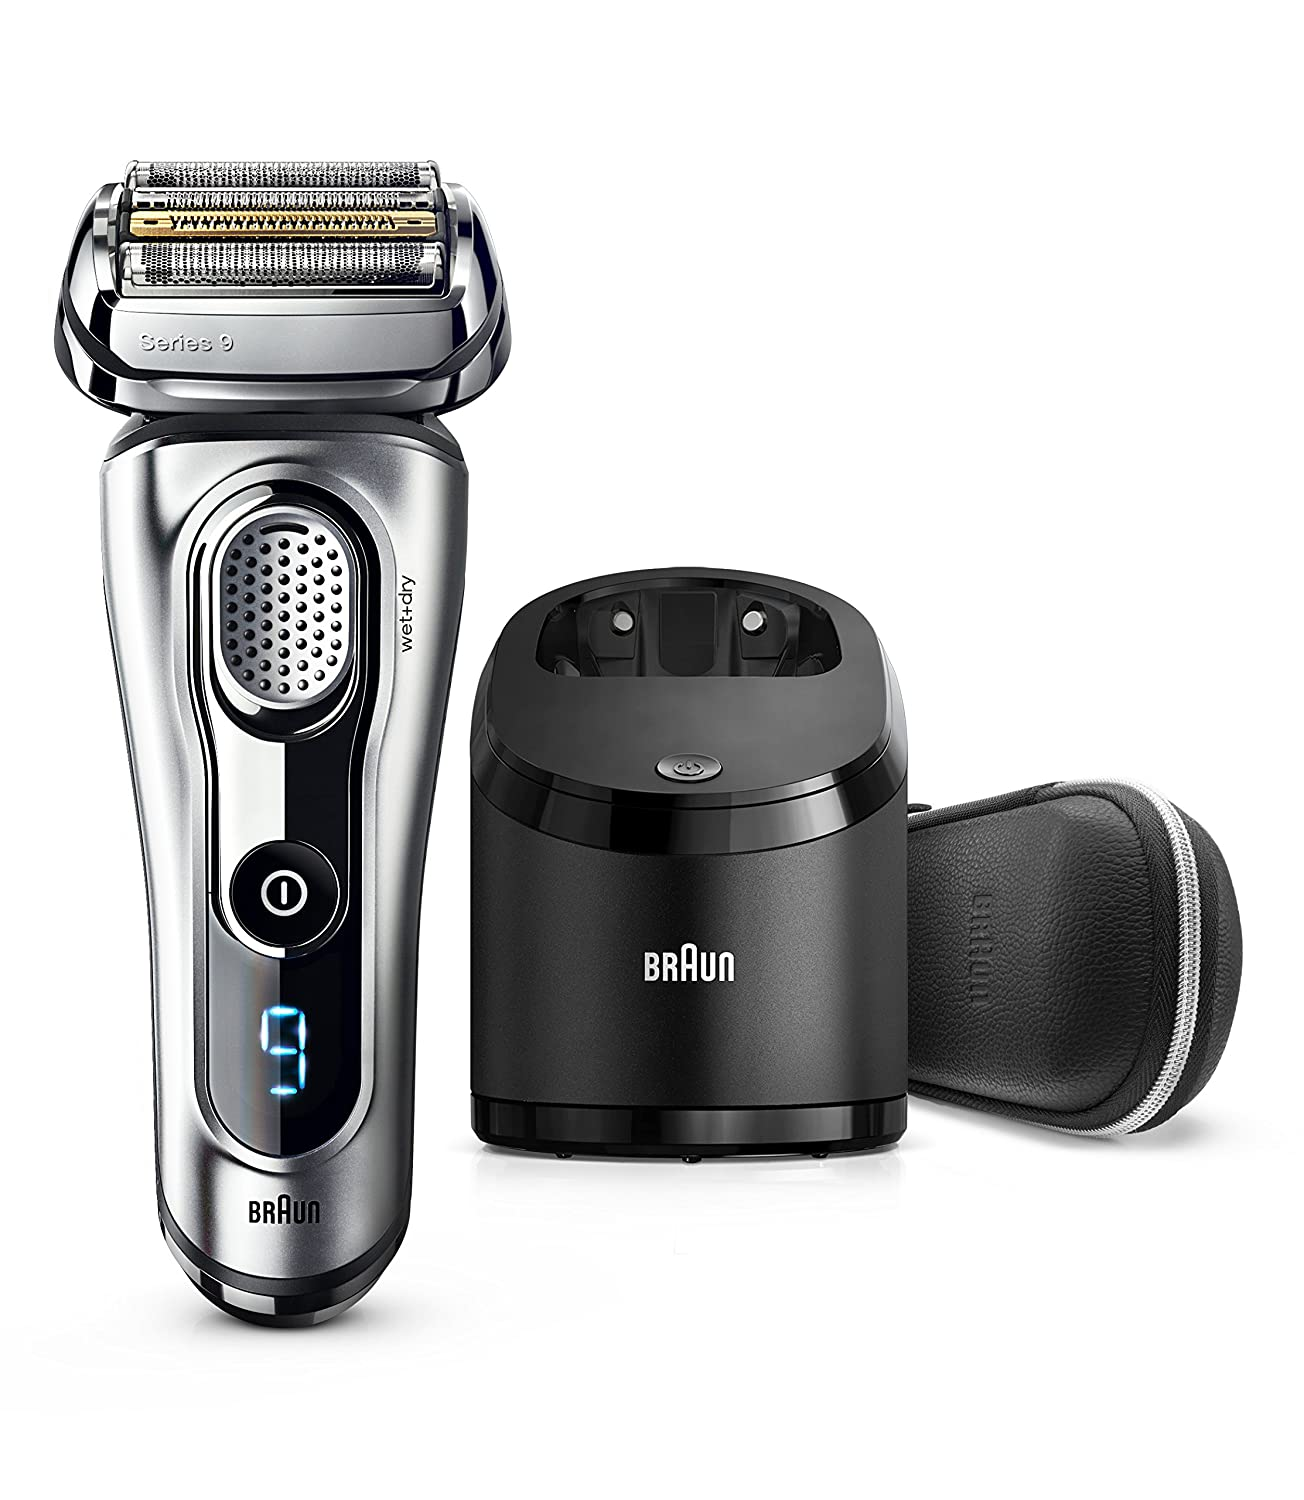 Best Foil Shaver in 2020: Reviews & Buying Guide 19